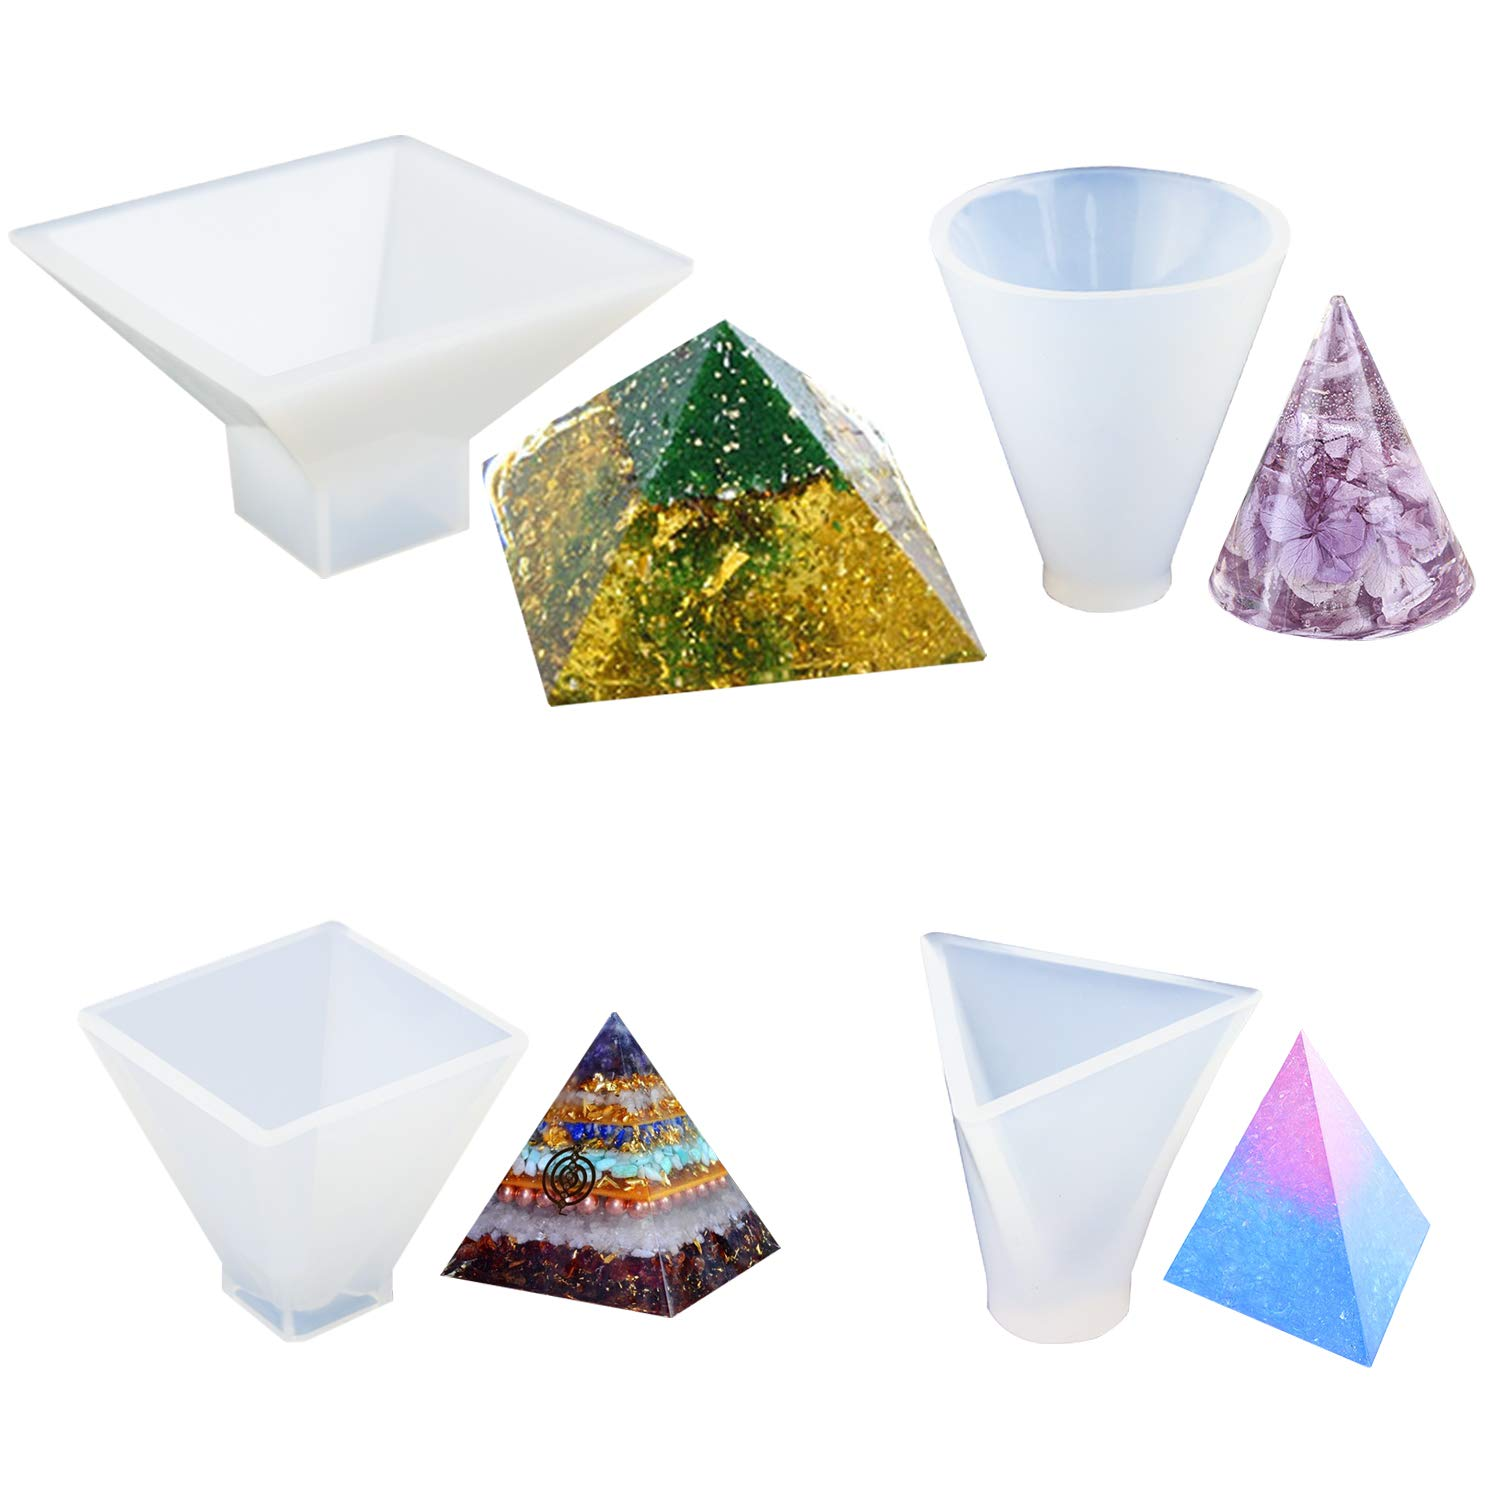 4 Pack Pyramid Silicone Molds JOFAMY Resin Casting Molds, Cone Epoxy Resin Molds, Resin Jewelry Molds for Orgone Pyramid, Home Decoration, Candle and Soap Making, Etc (Pyramid 4pcs) E4ulife